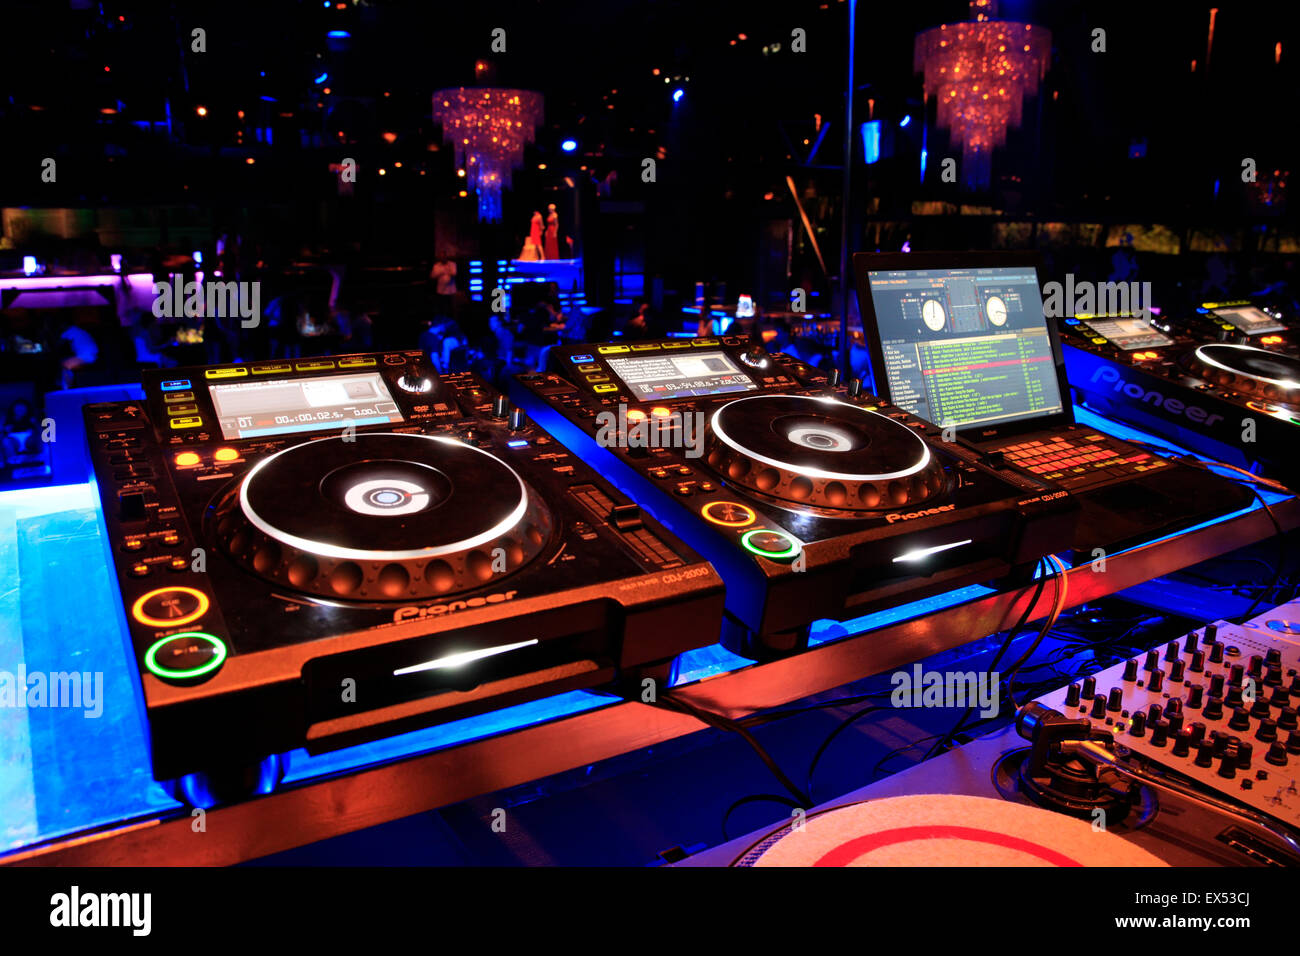 Image of audio mixing devices / decks and a laptop loaded with music software suite with glowing chandeliers in - Stock Image